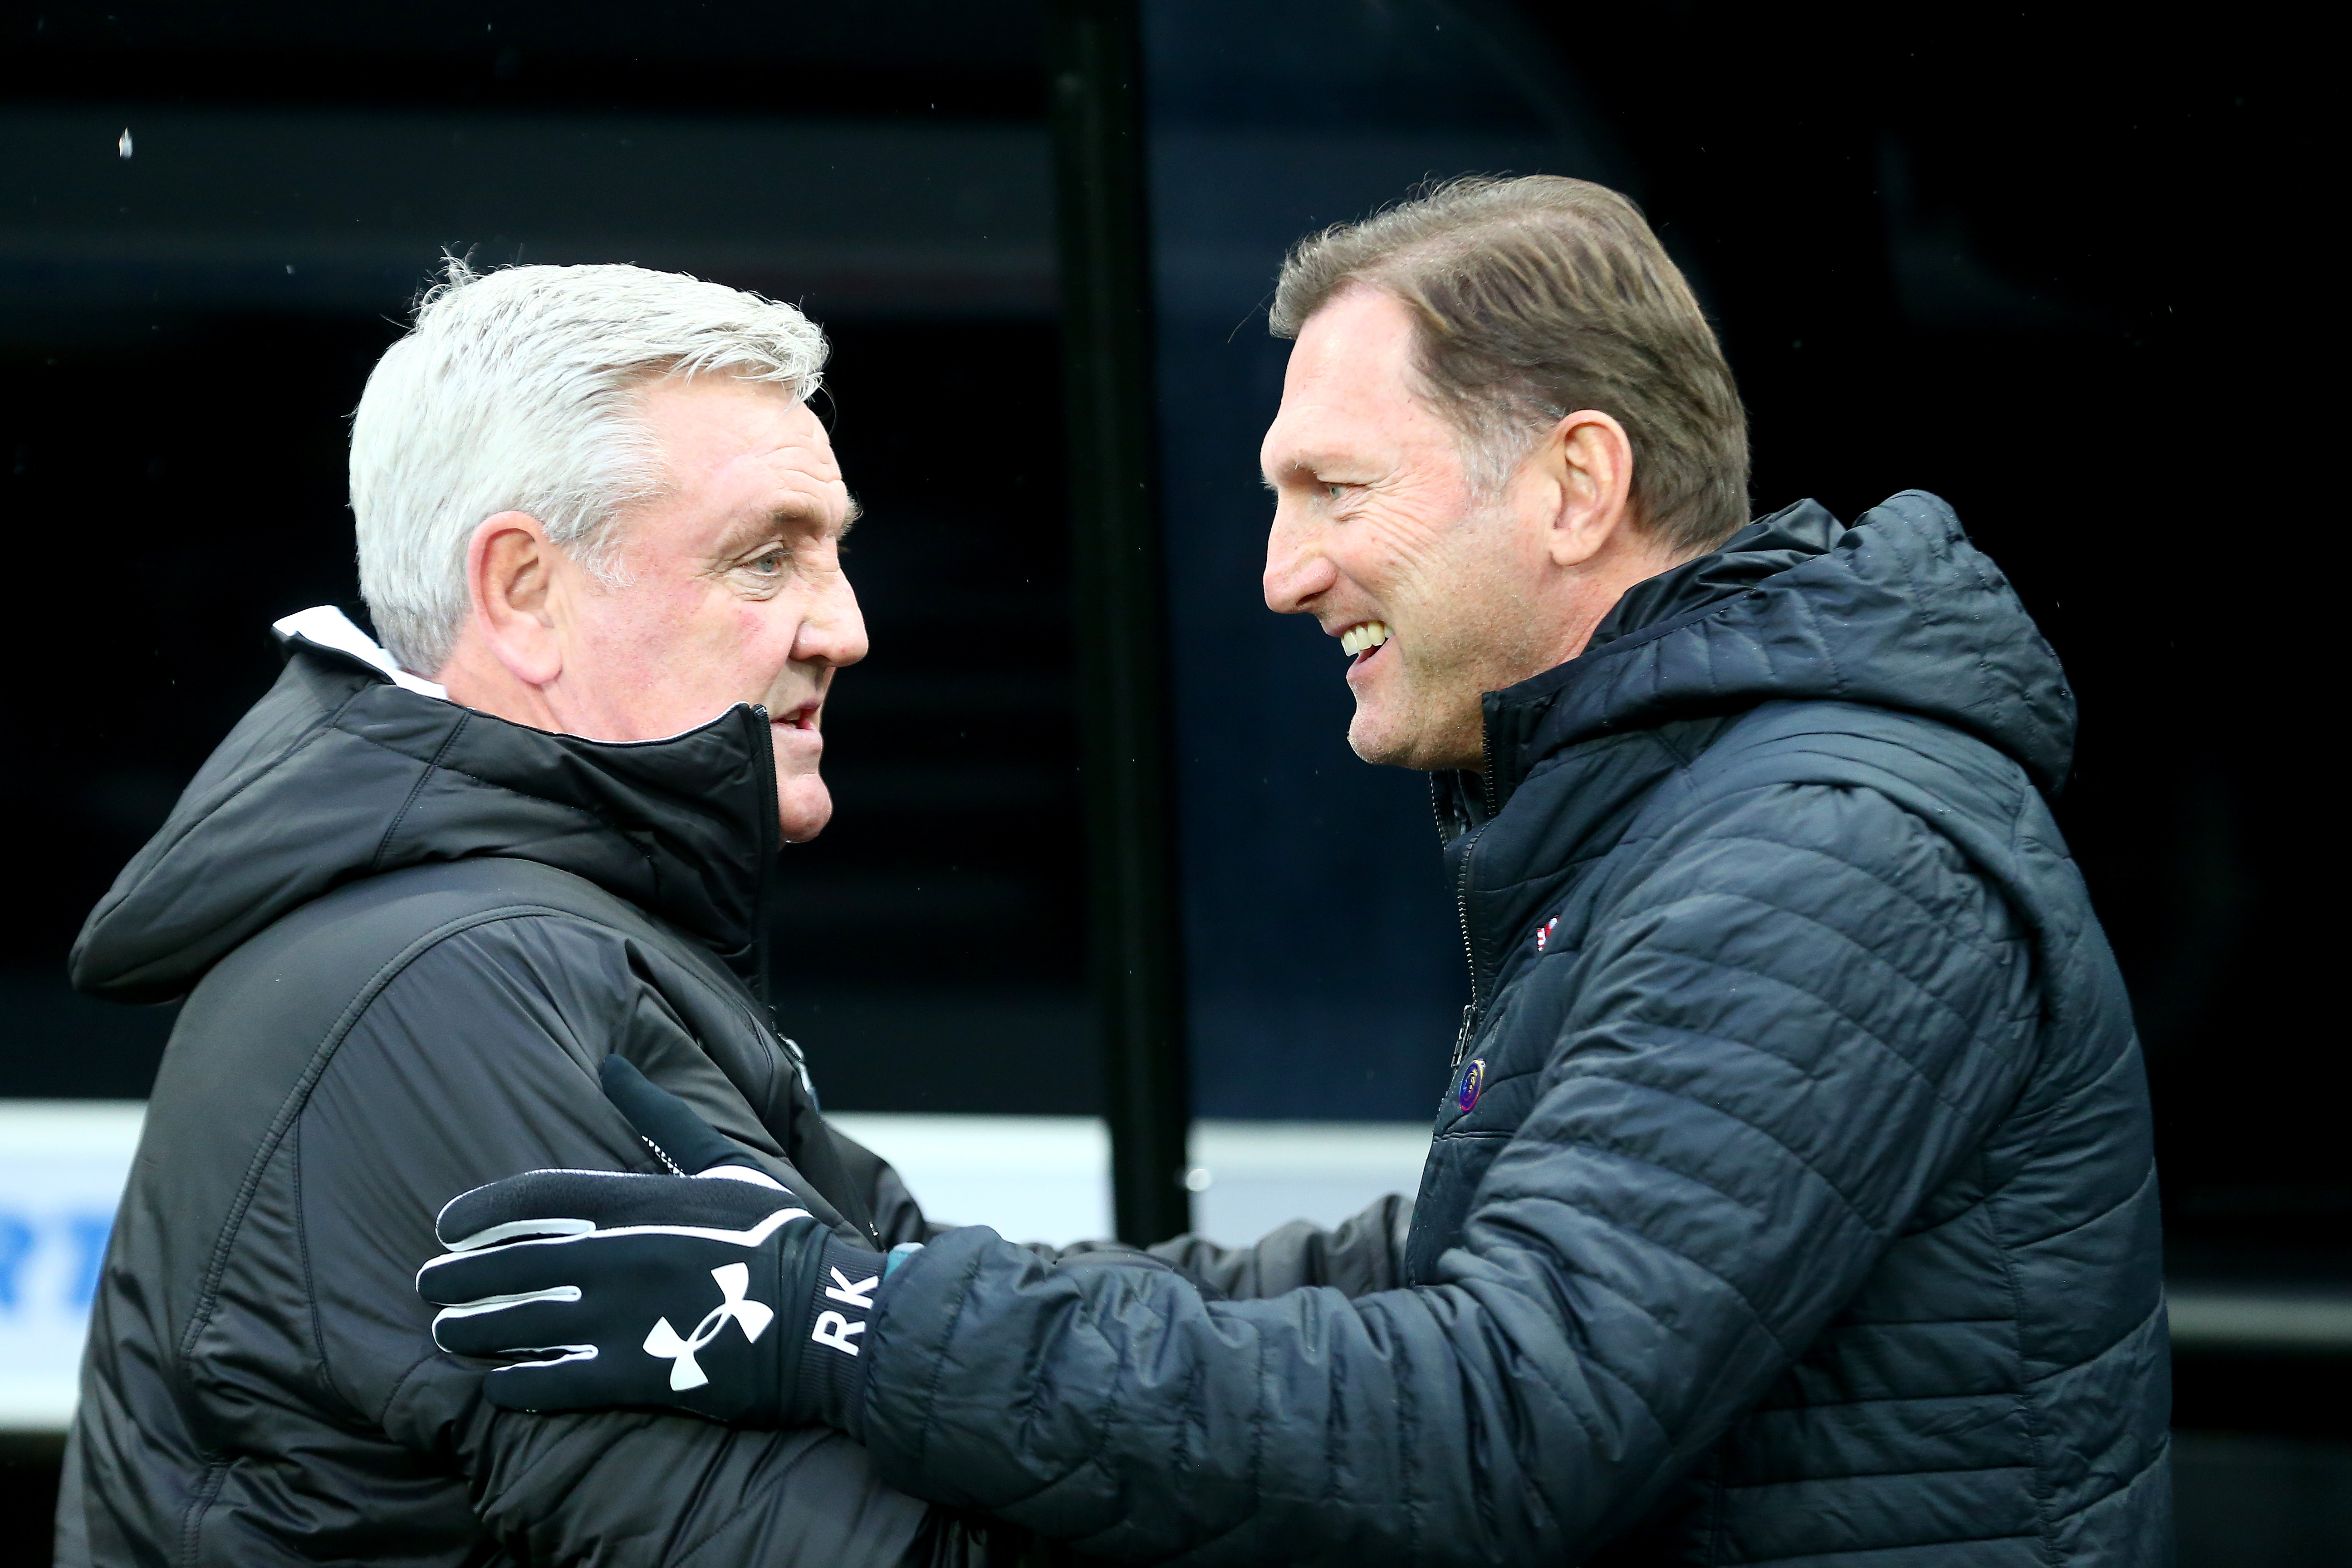 Southampton, Newcastle, Premier League, preview, Ralph Hasenhuttl, Steve Bruce, team news, injury update, how to watch on TV, stream online